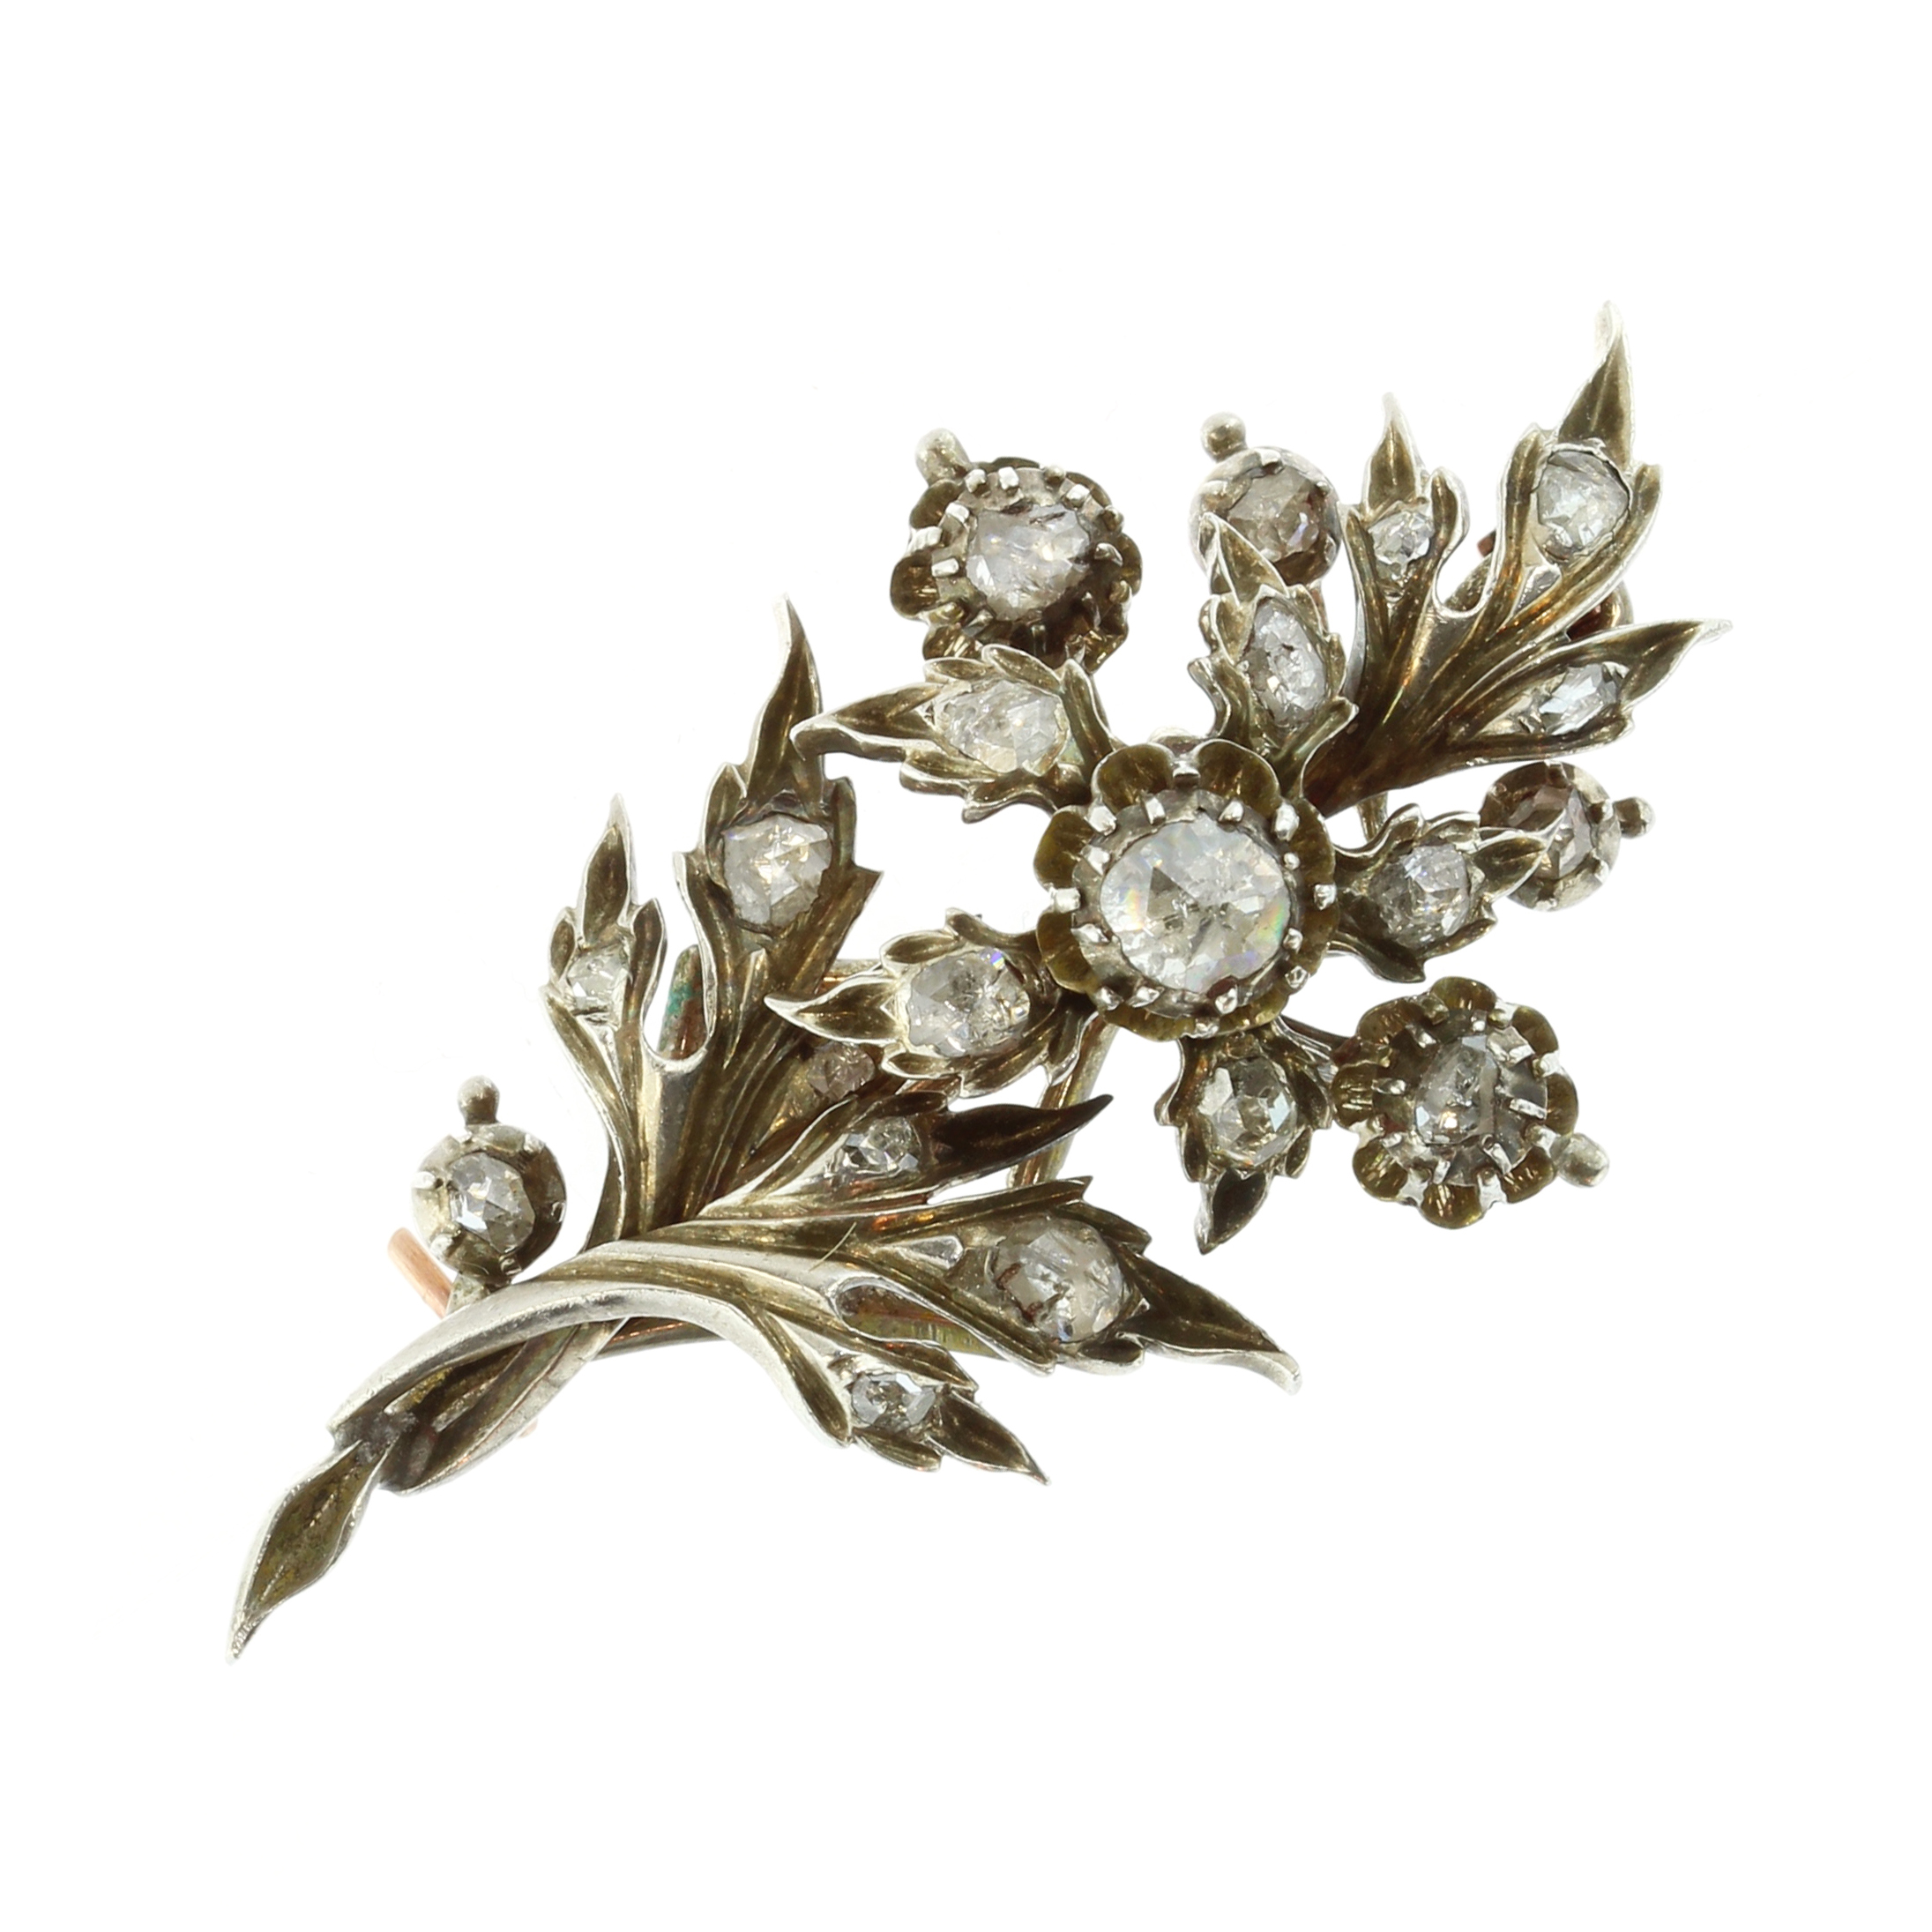 Los 18 - An antique jewelled diamond floral spray brooch in gold and silver designed as a spray of flowers